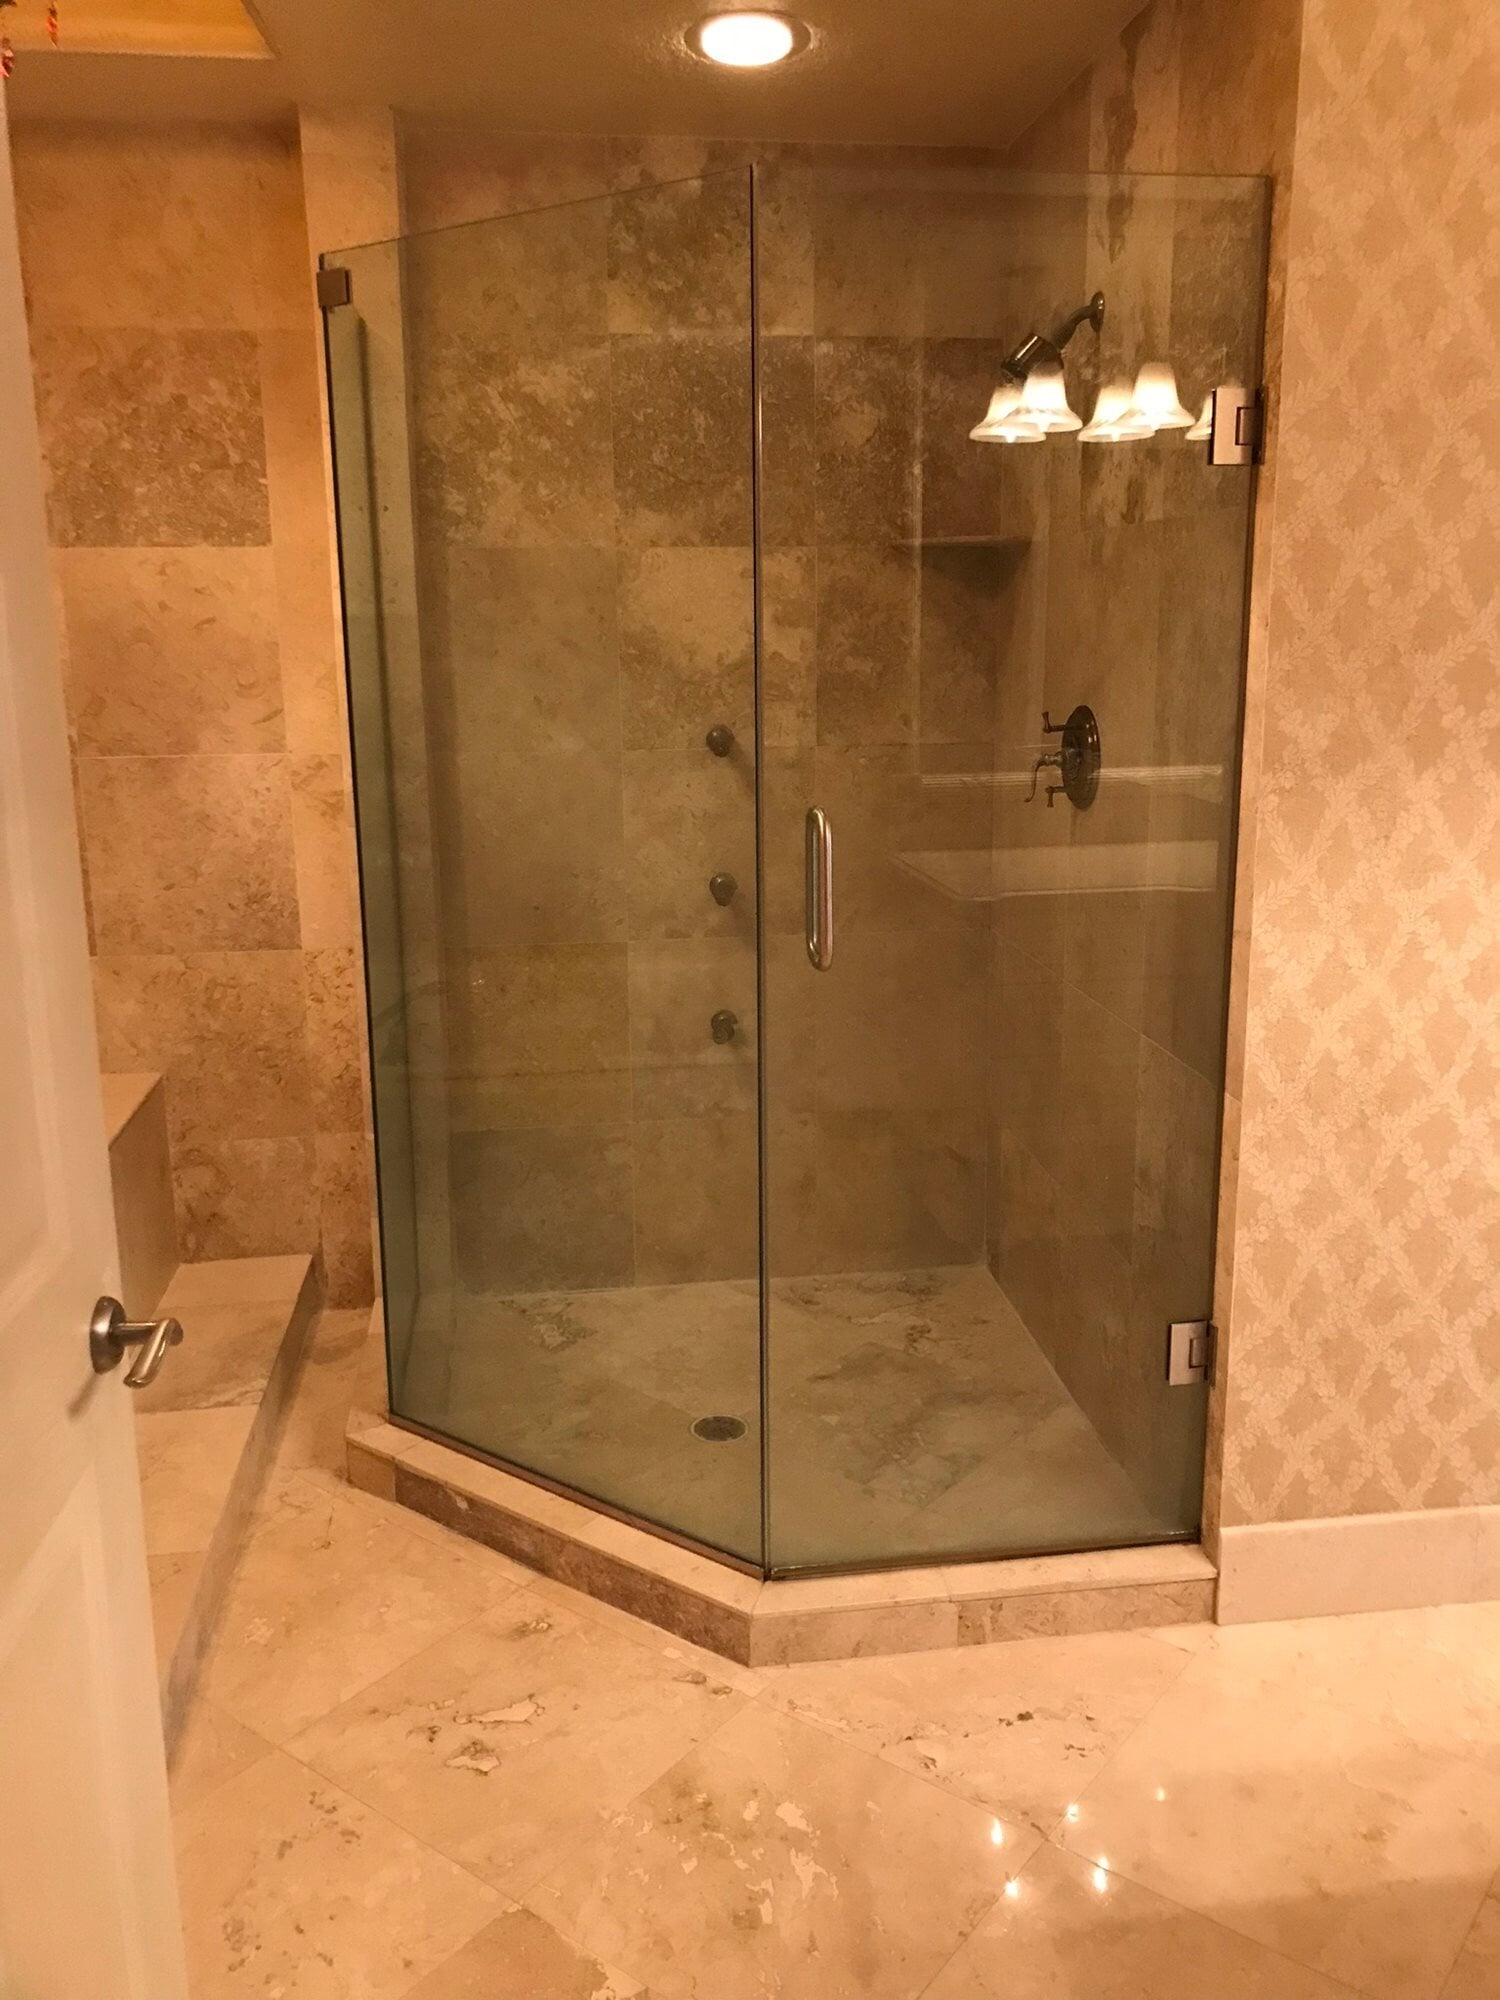 Travertile bathroom tile in Palm Beach Gardens, FL from Floors For You Kitchen & Bath